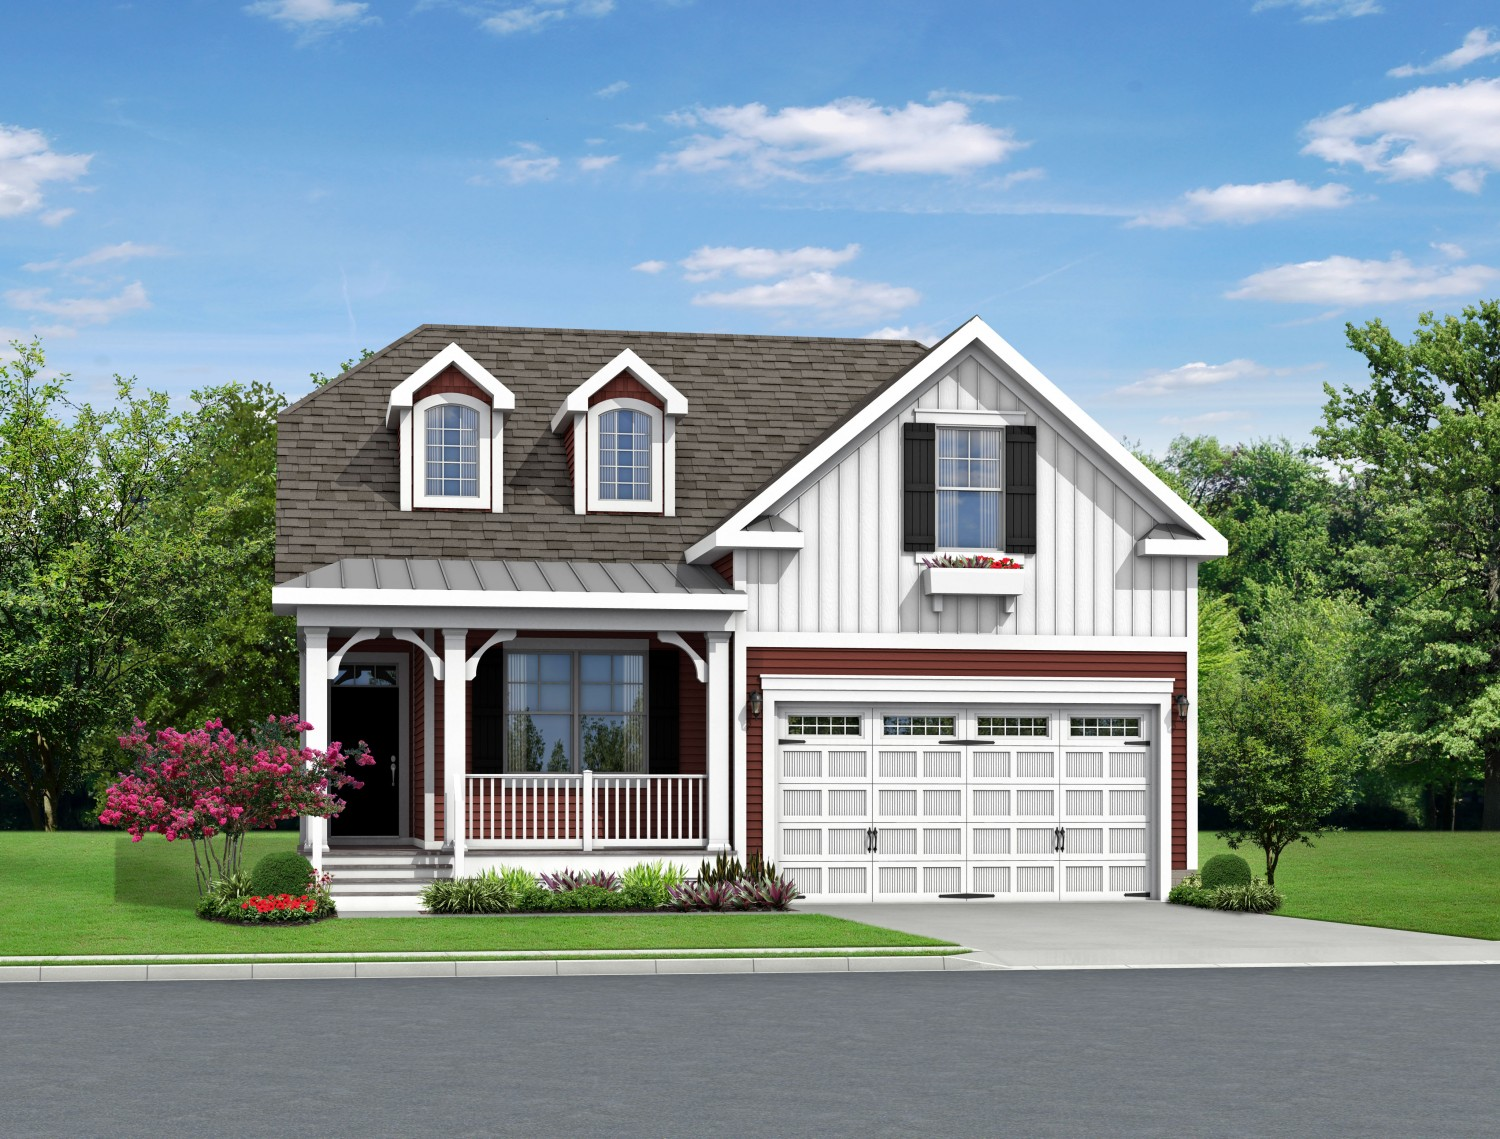 The exceptional curb appeal of a Schell